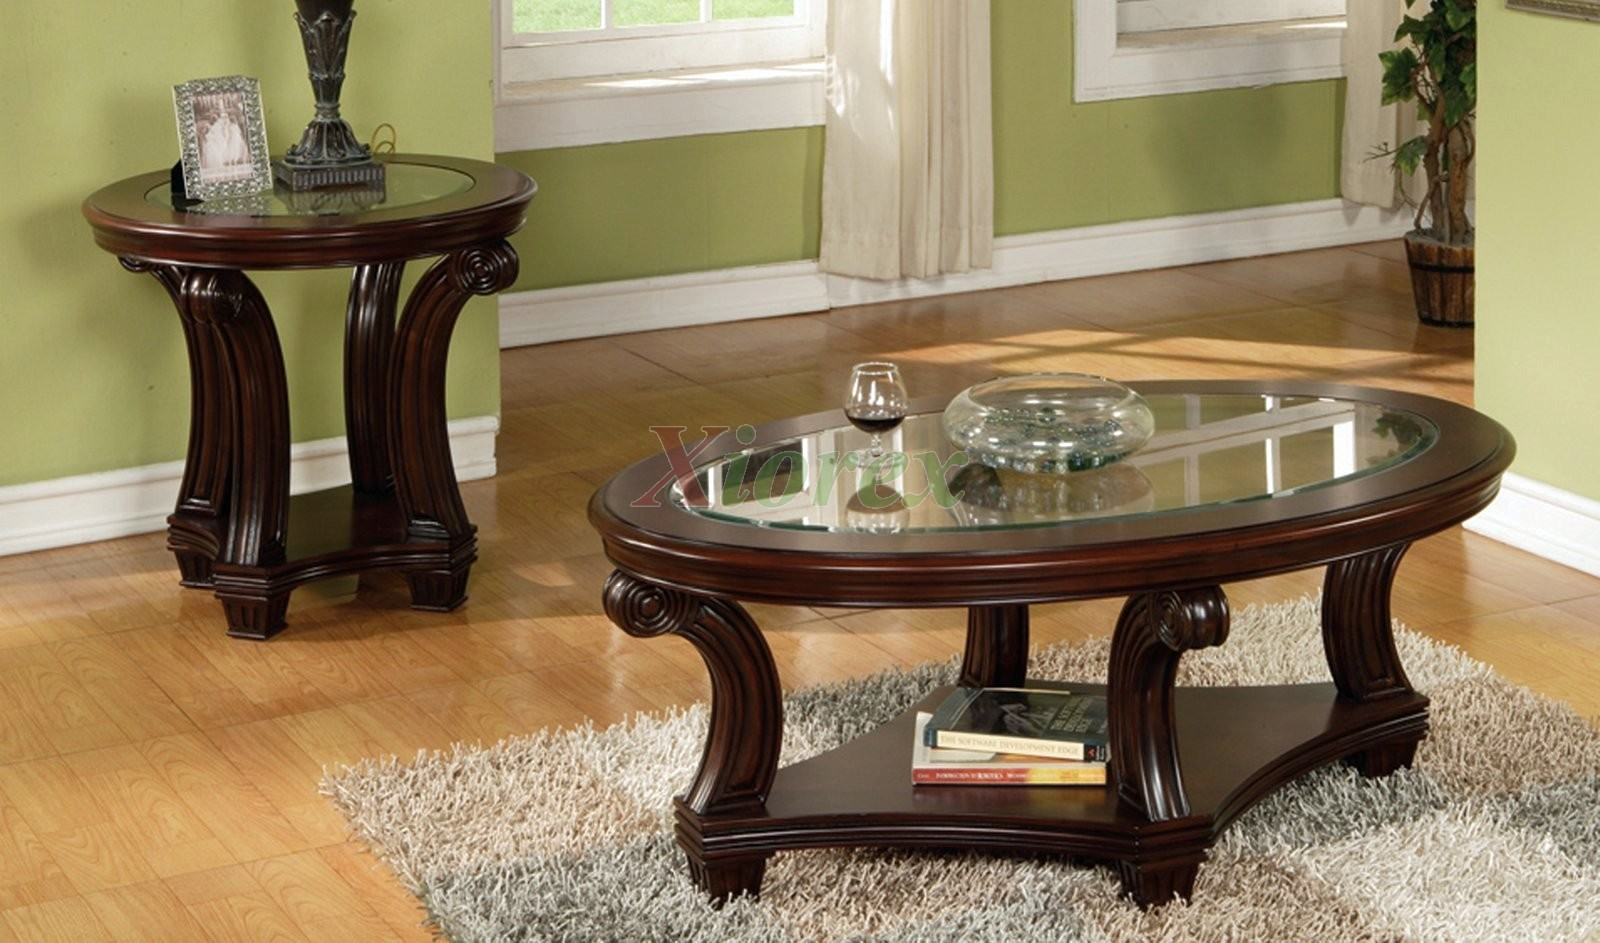 Modern Coffee Tables End Tables Perseus Glass Top Wooden Modern Minimalist Industrial Style Rustic Wood Furniture (View 5 of 10)